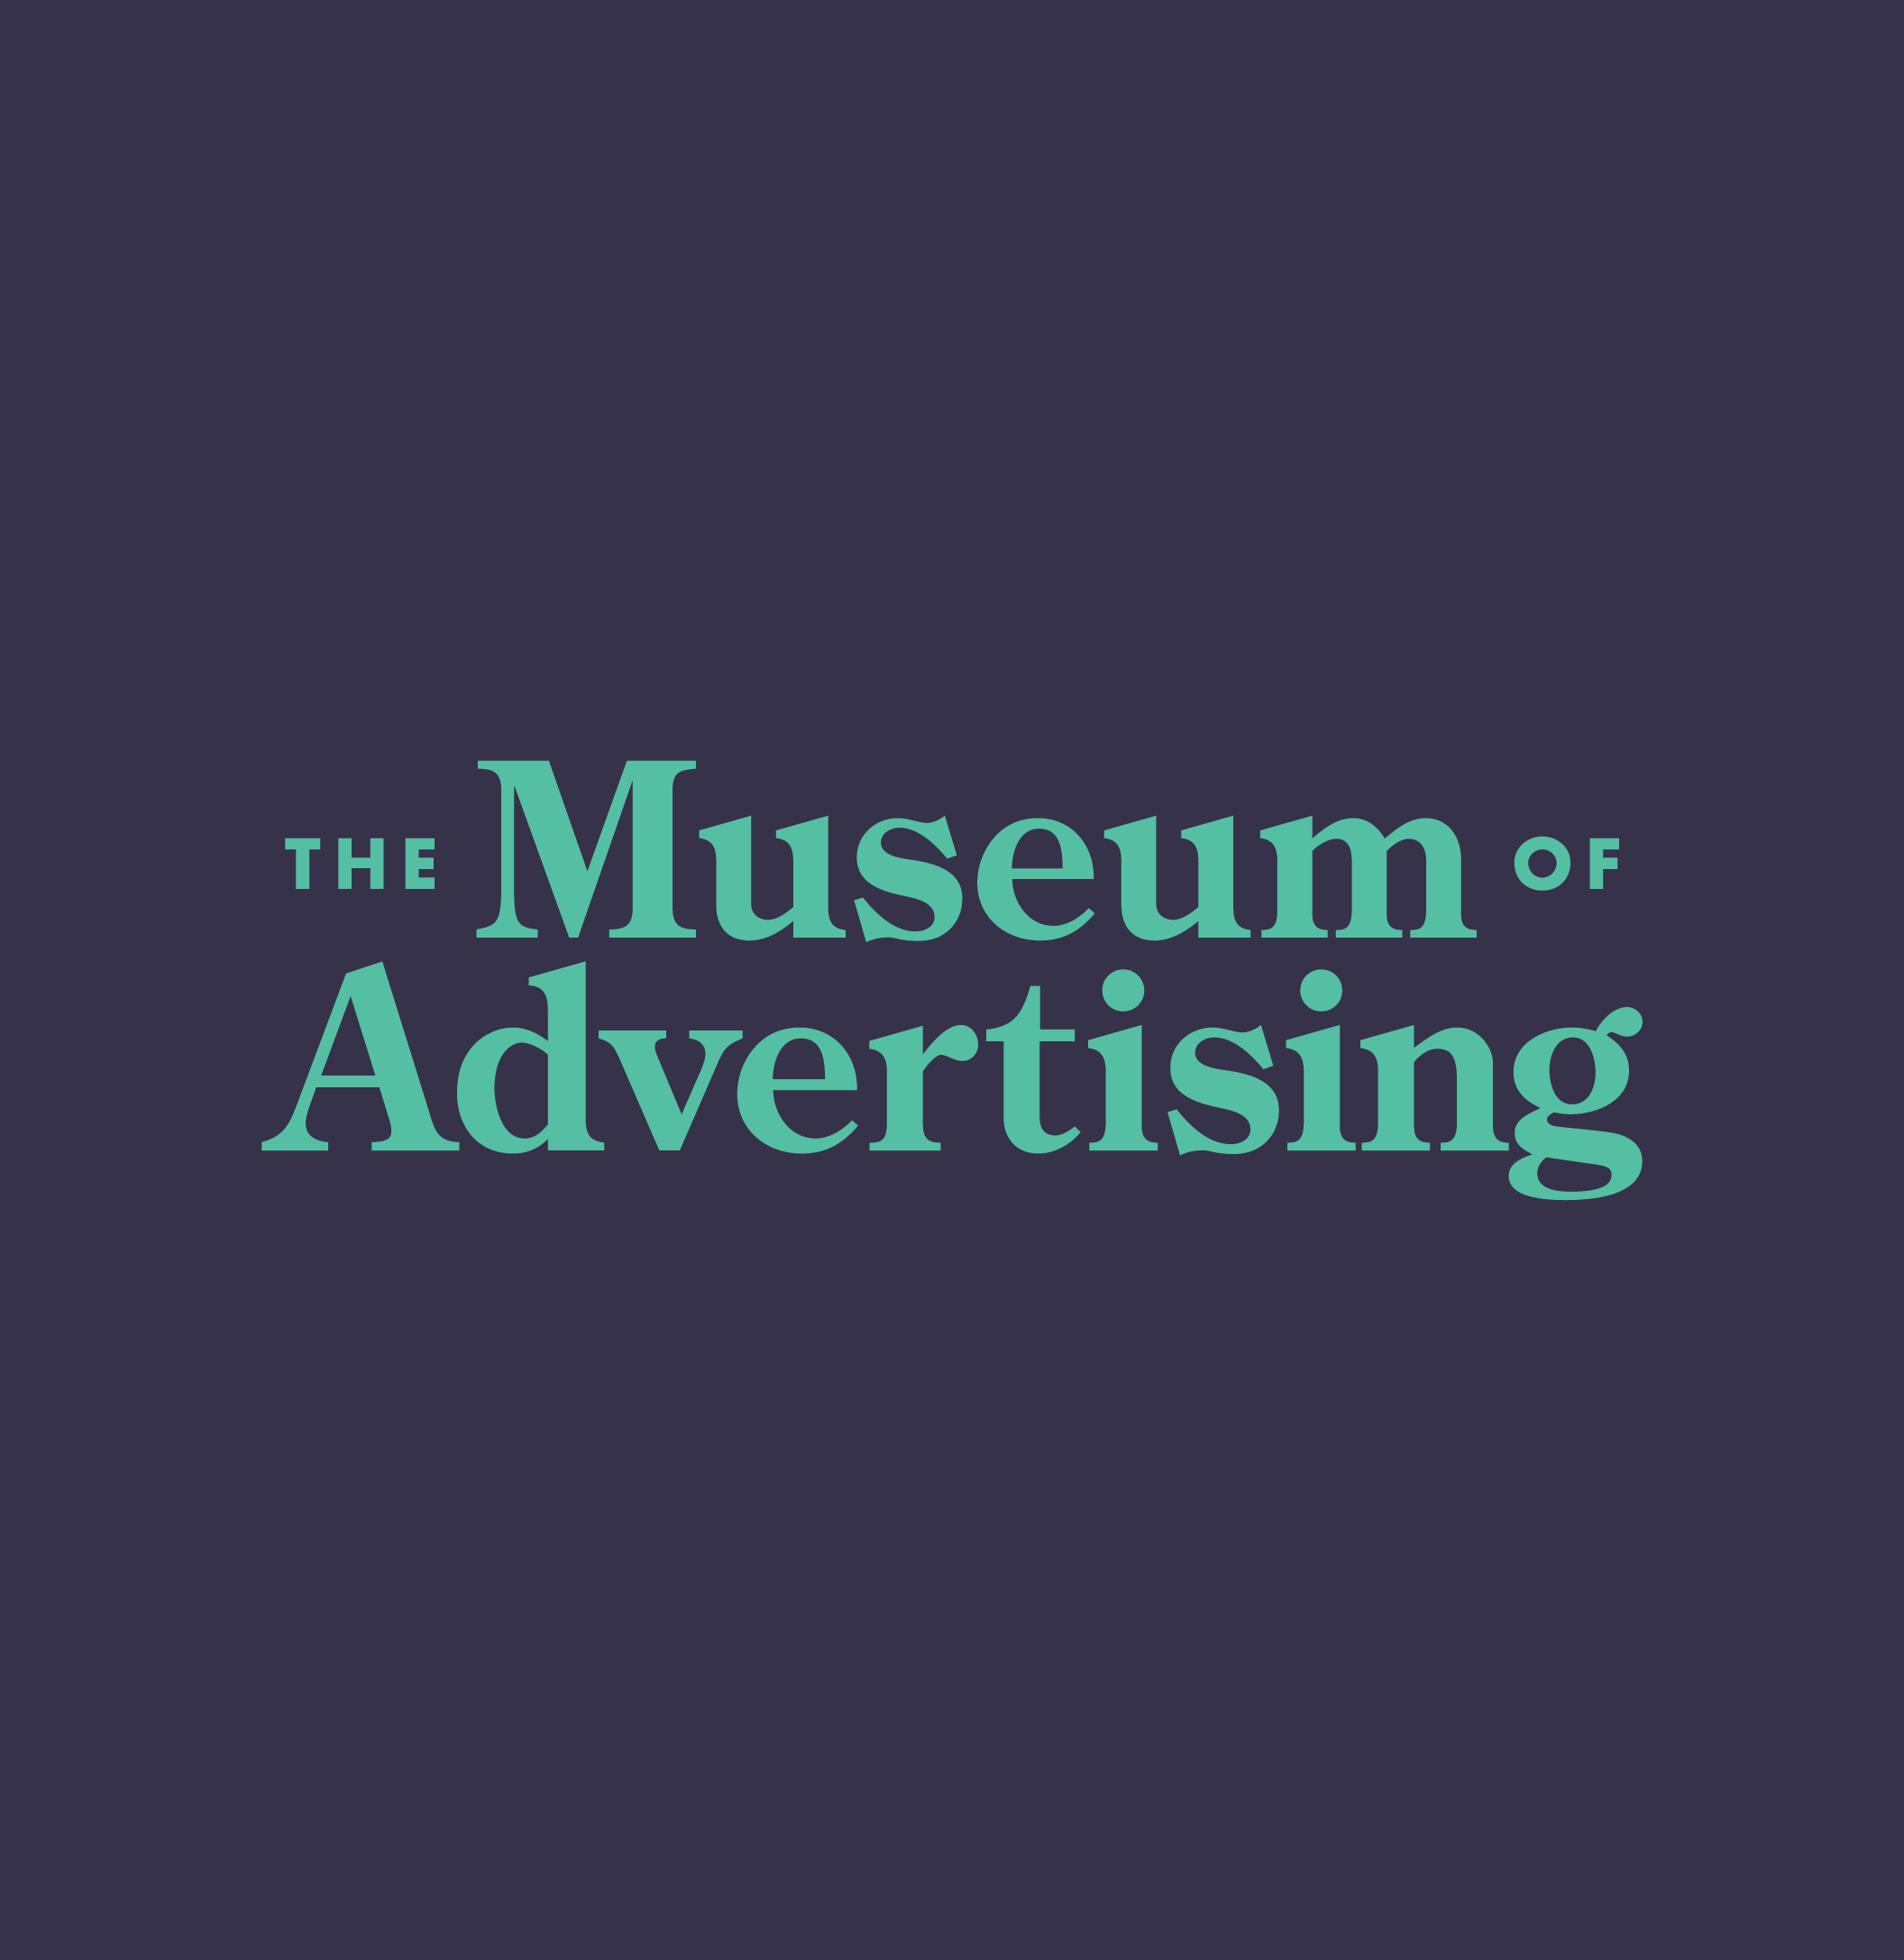 Avatar - The Museum of Advertising